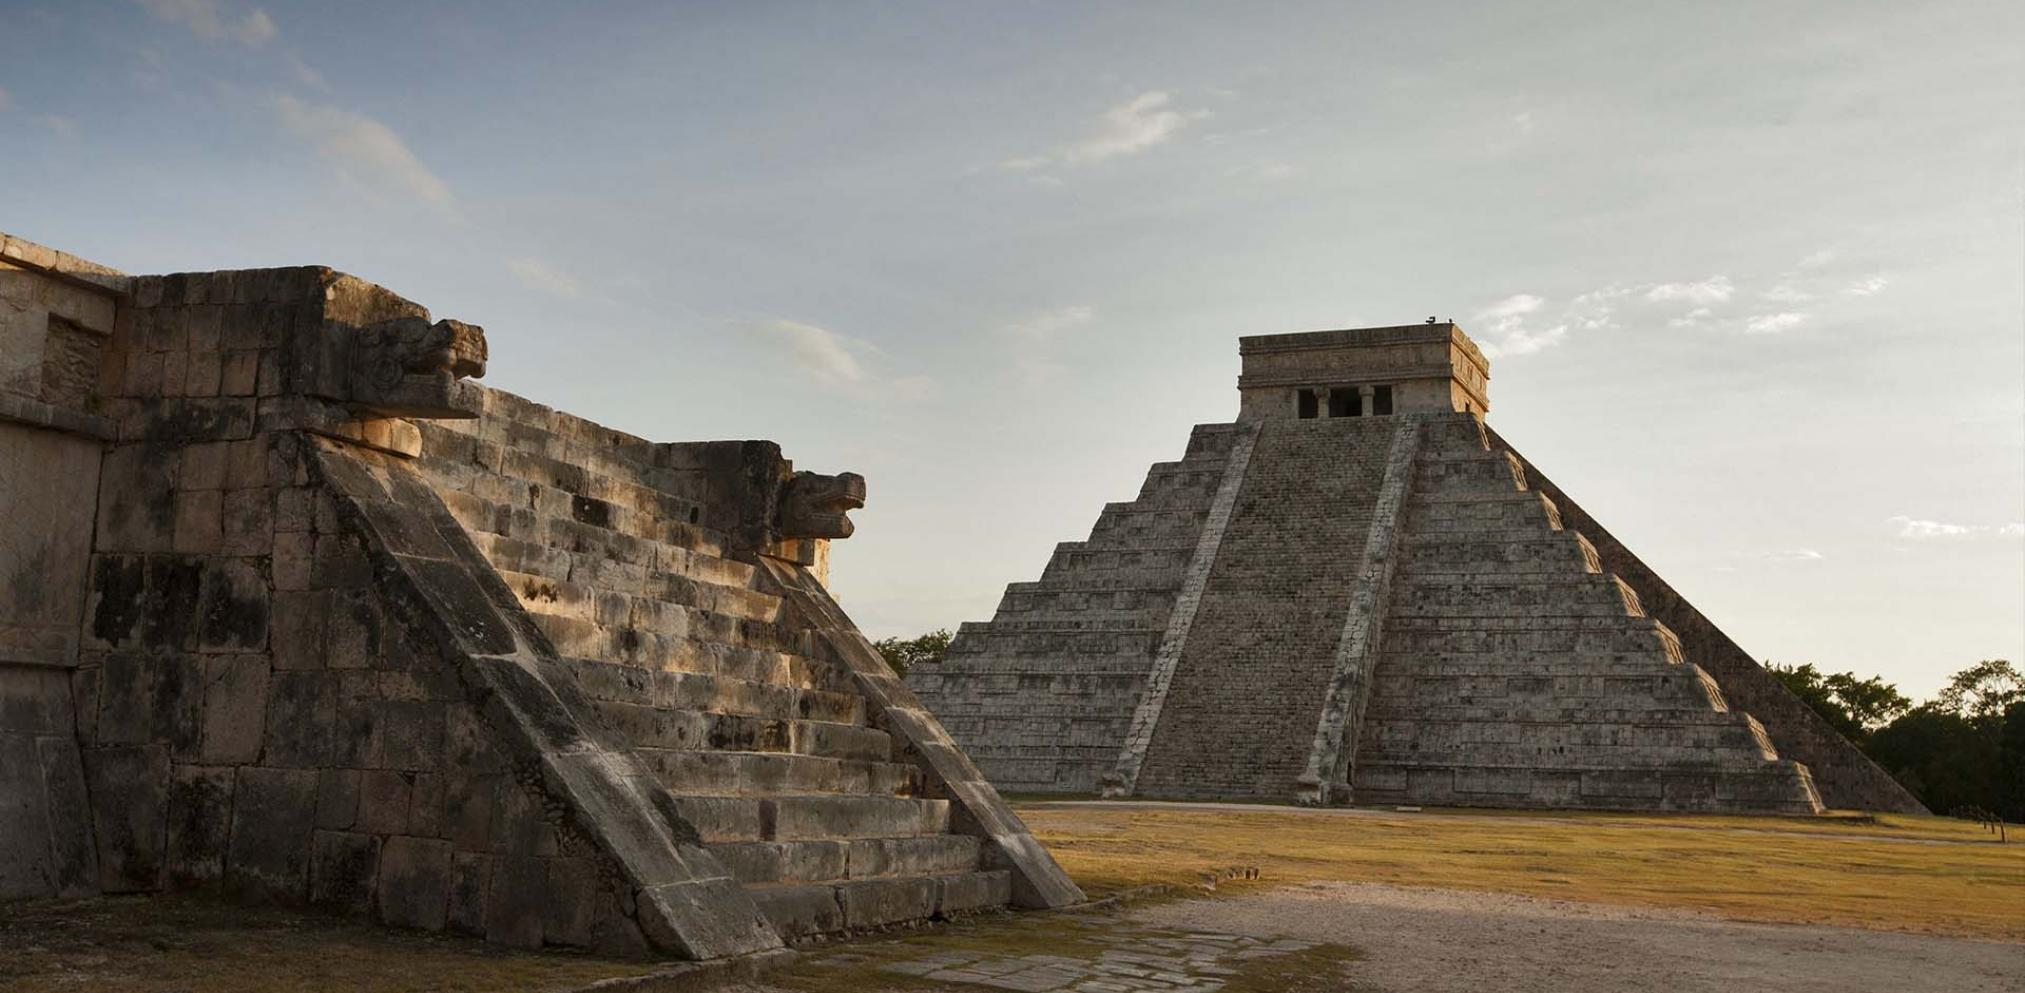 How to explore ancient ruins of Mexico